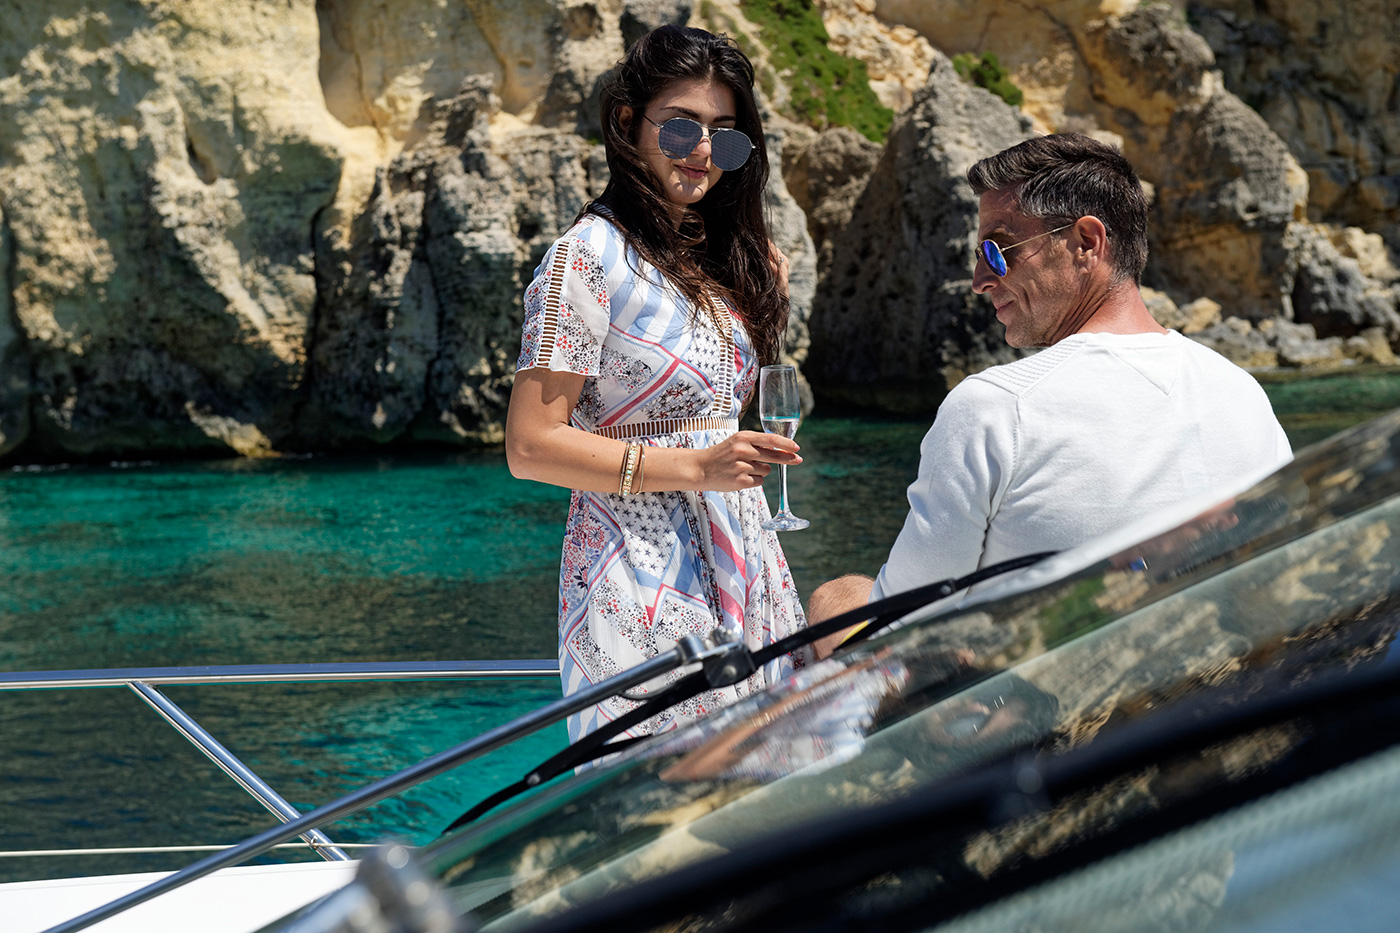 Discover a wide choice of luxury yacht charter holidays and bespoke motor yacht charter options available, and let us take you on a memorable Mediterranean experience like no other.